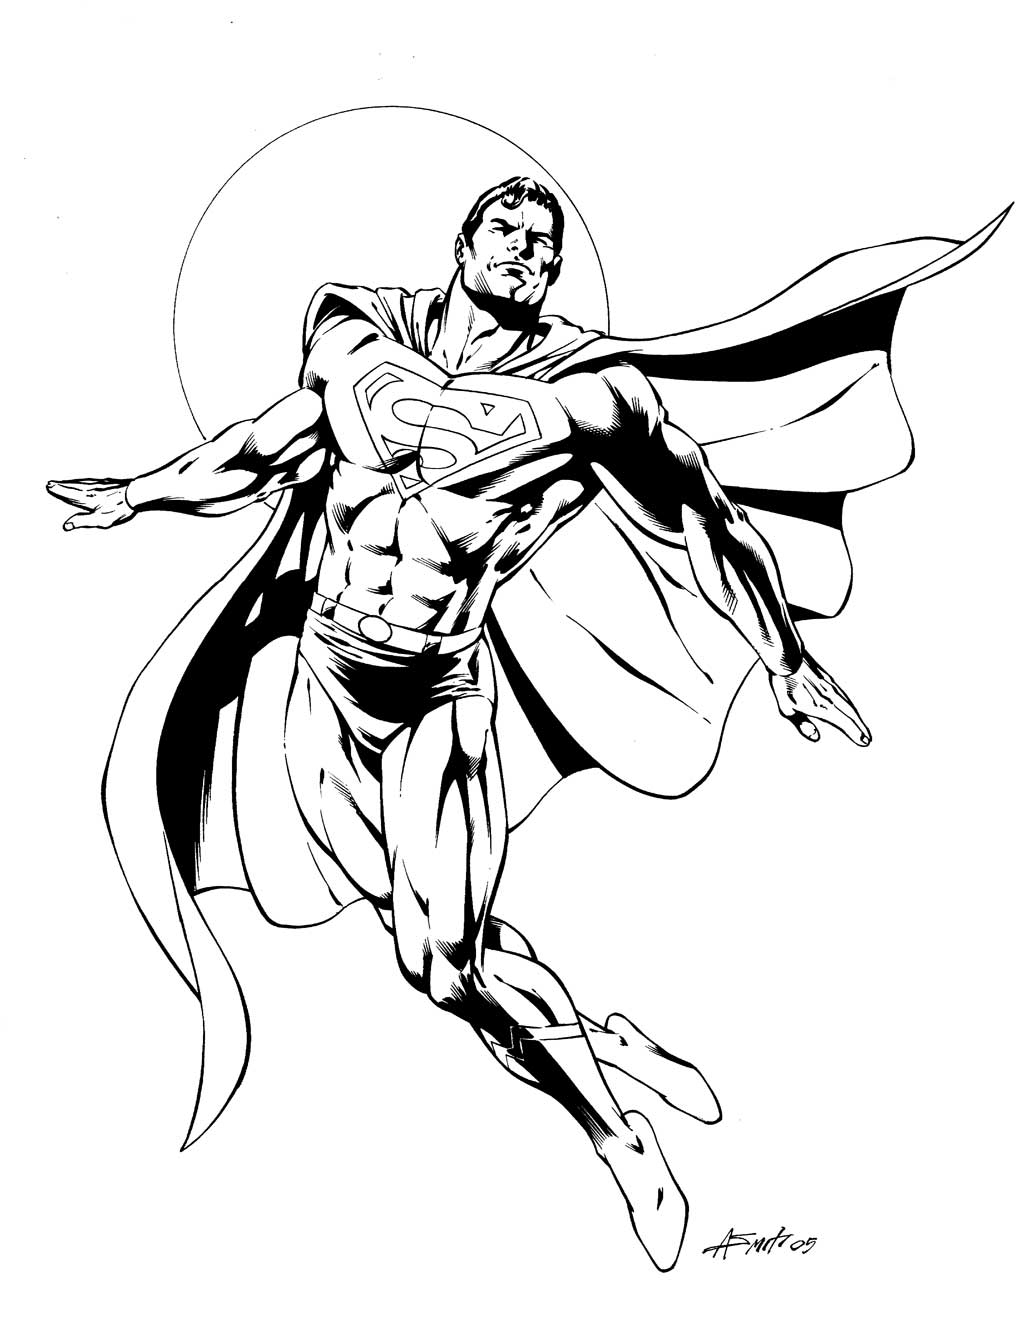 27 Superman Coloring Pages Selection | FREE COLORING PAGES - Part 3